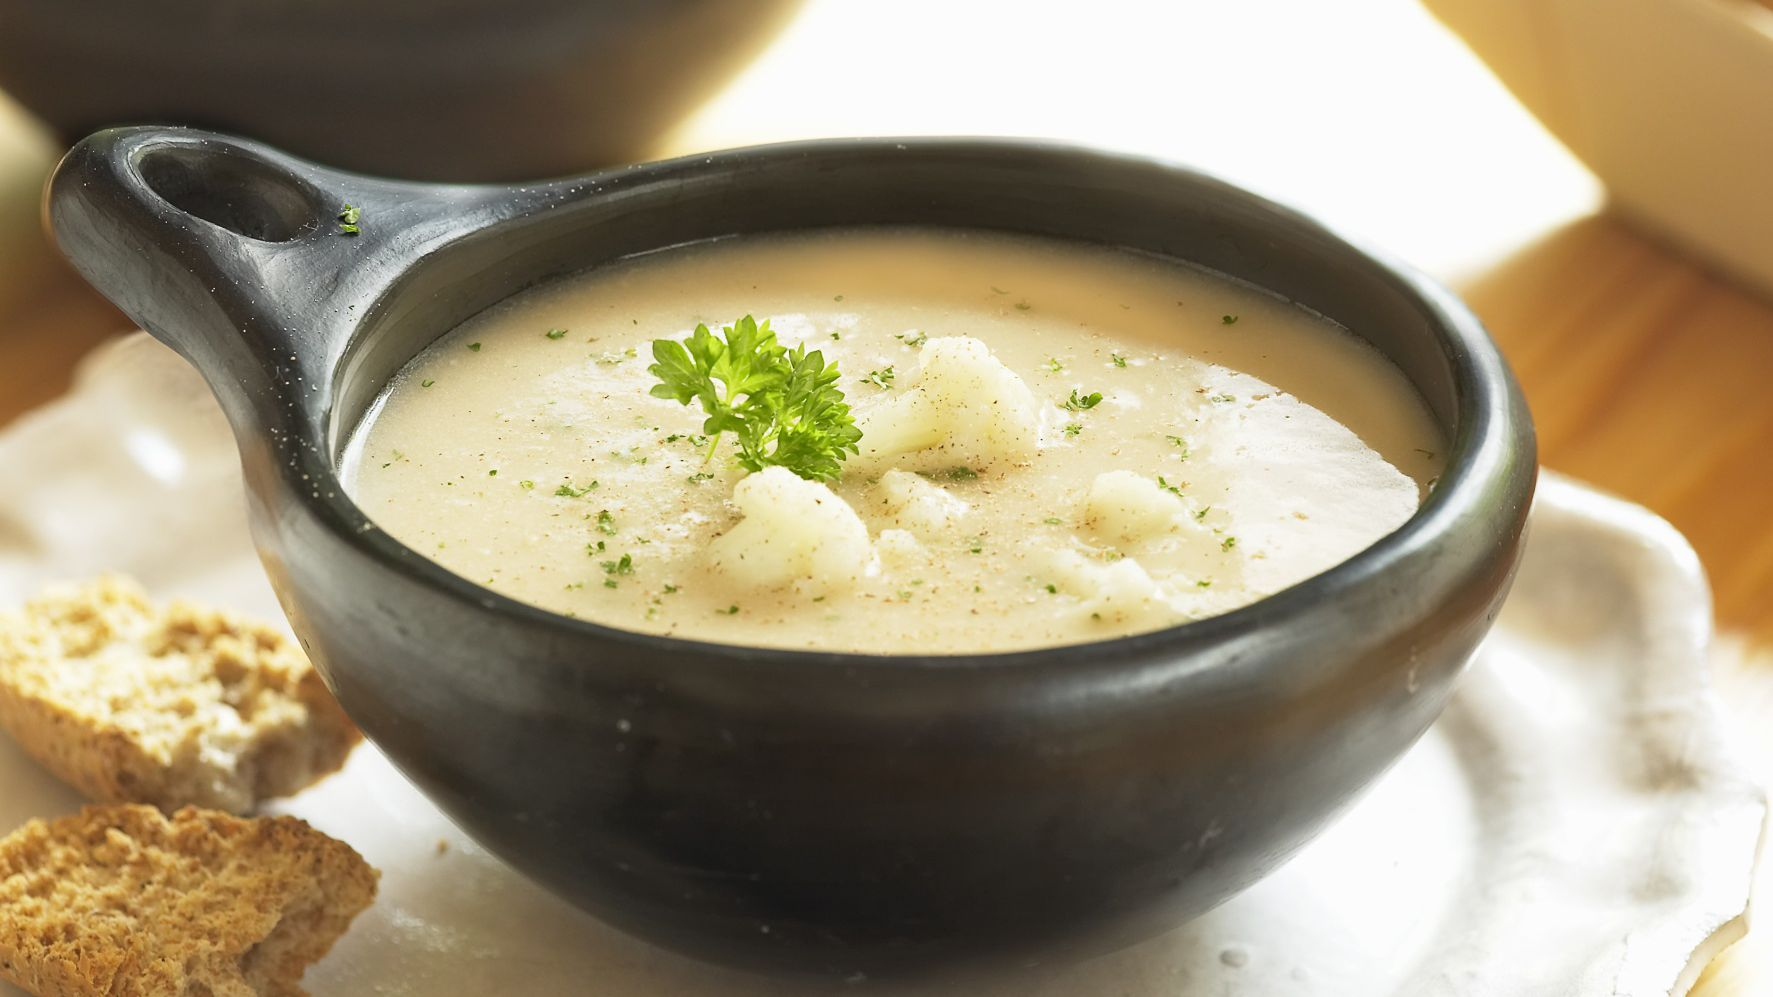 Gluten Free Low Carb Cauliflower Cheese Soup Recipe